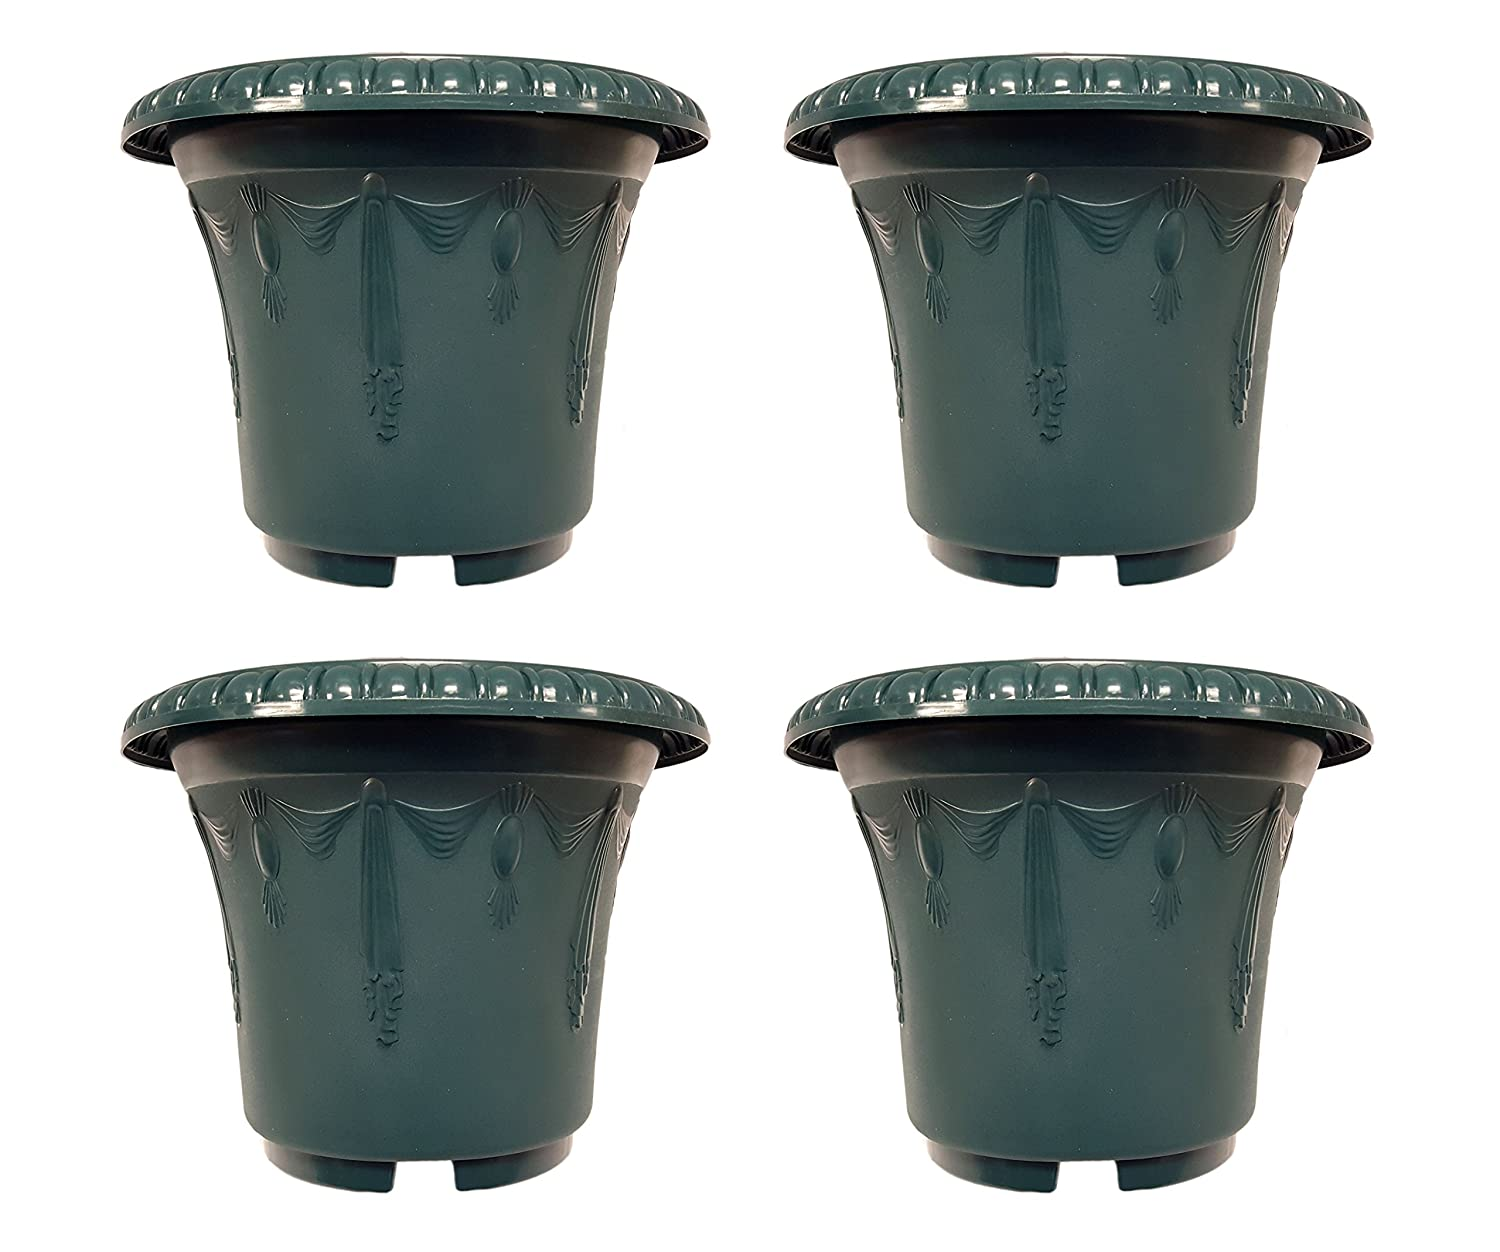 Set of 4 Round Emboss Draping Decorative 9.5 x 7.5 Planters Pots Green